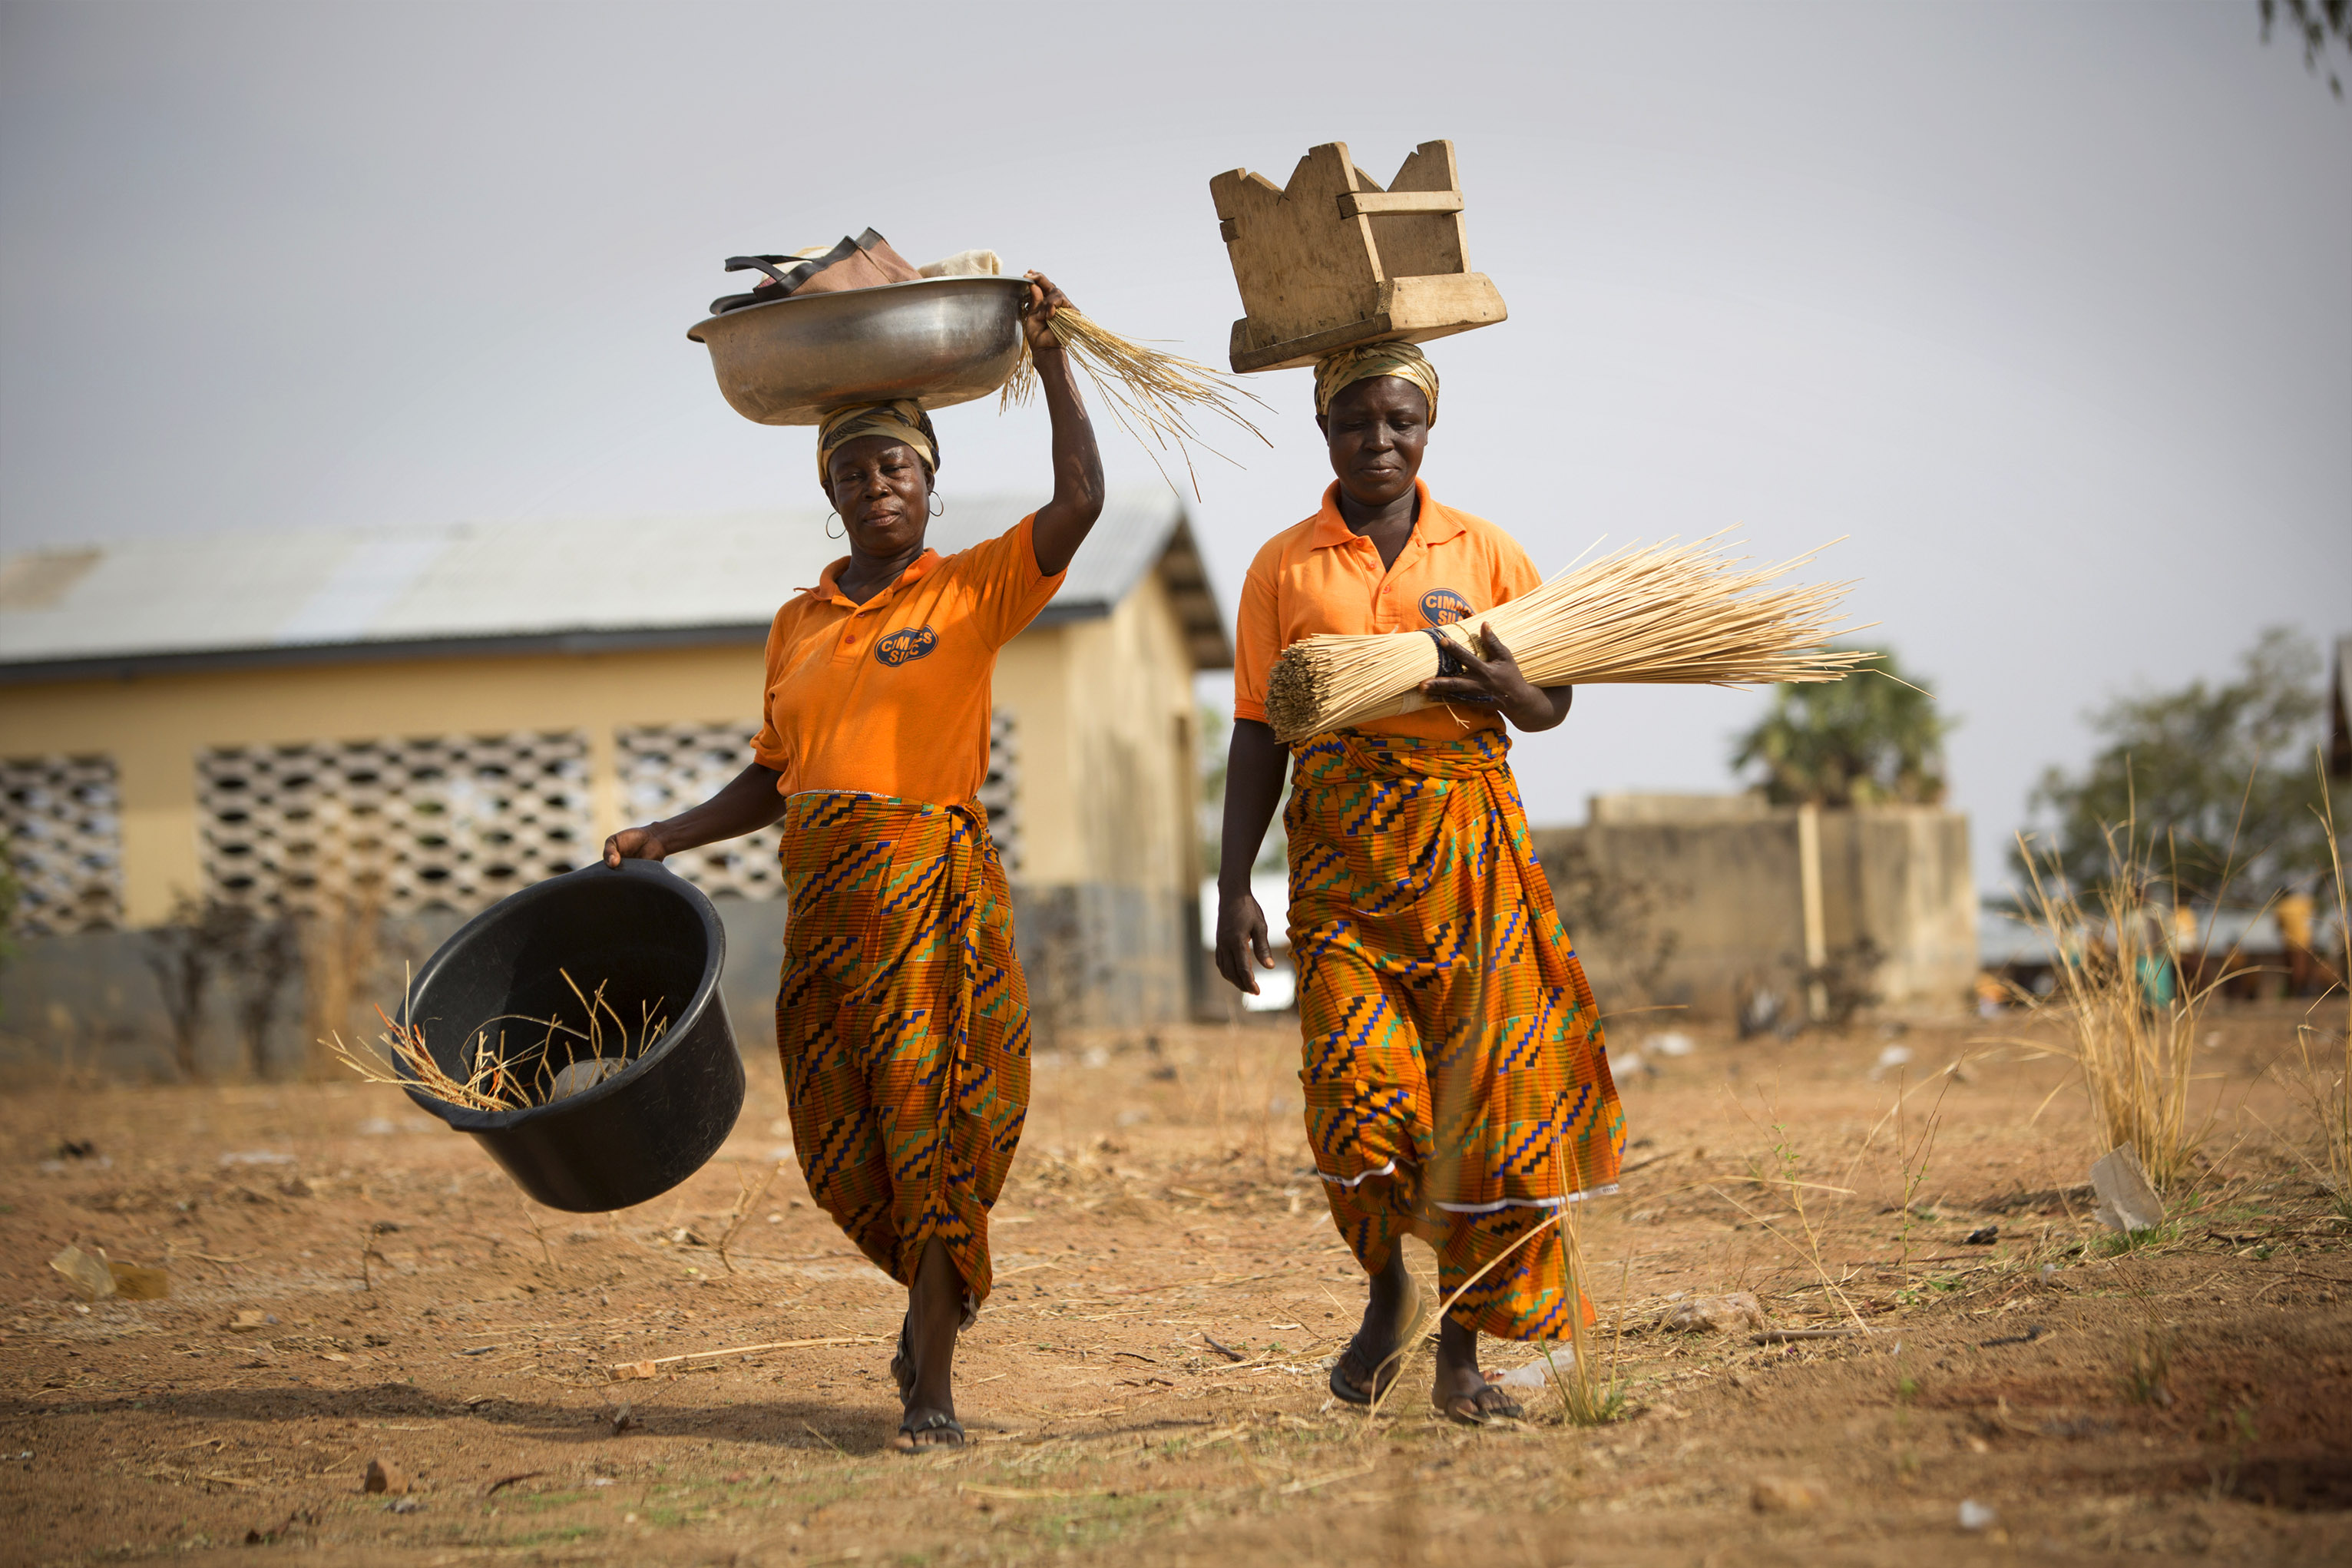 The ones who are impacted by climate change the most are the poorer groups depending on natural resource-based activities. These marginalized are often women. Photo by Jake Lyell for CRS